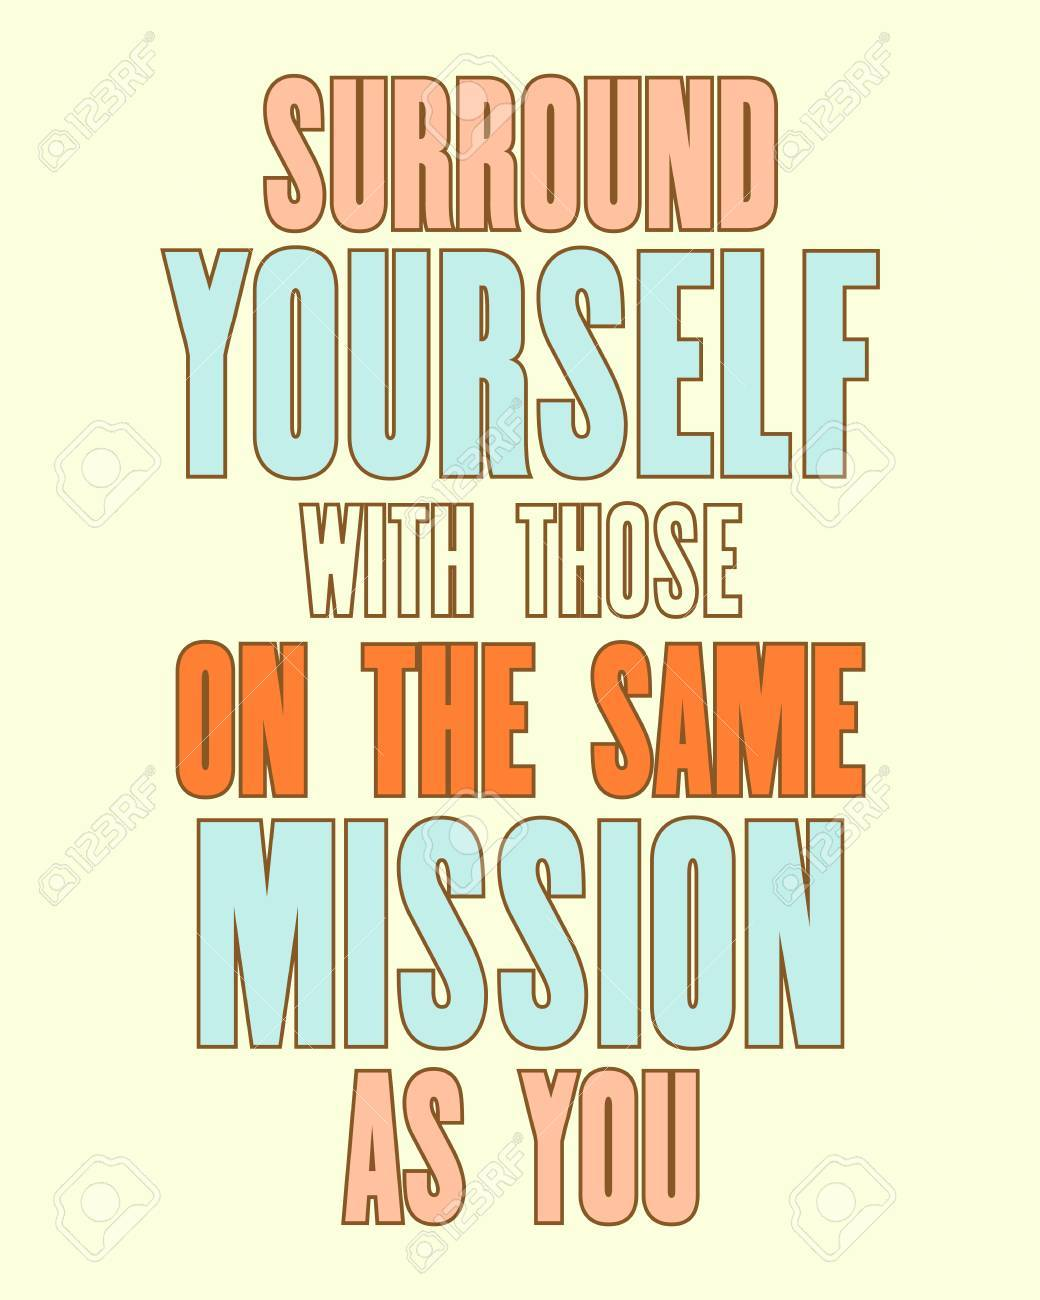 Surround Yourself With Those On The Same Mission As You : surround, yourself, those, mission, Inspiring, Motivation, Quote, Surround, Yourself, Those.., Royalty, Cliparts,, Vectors,, Stock, Illustration., Image, 87433859.